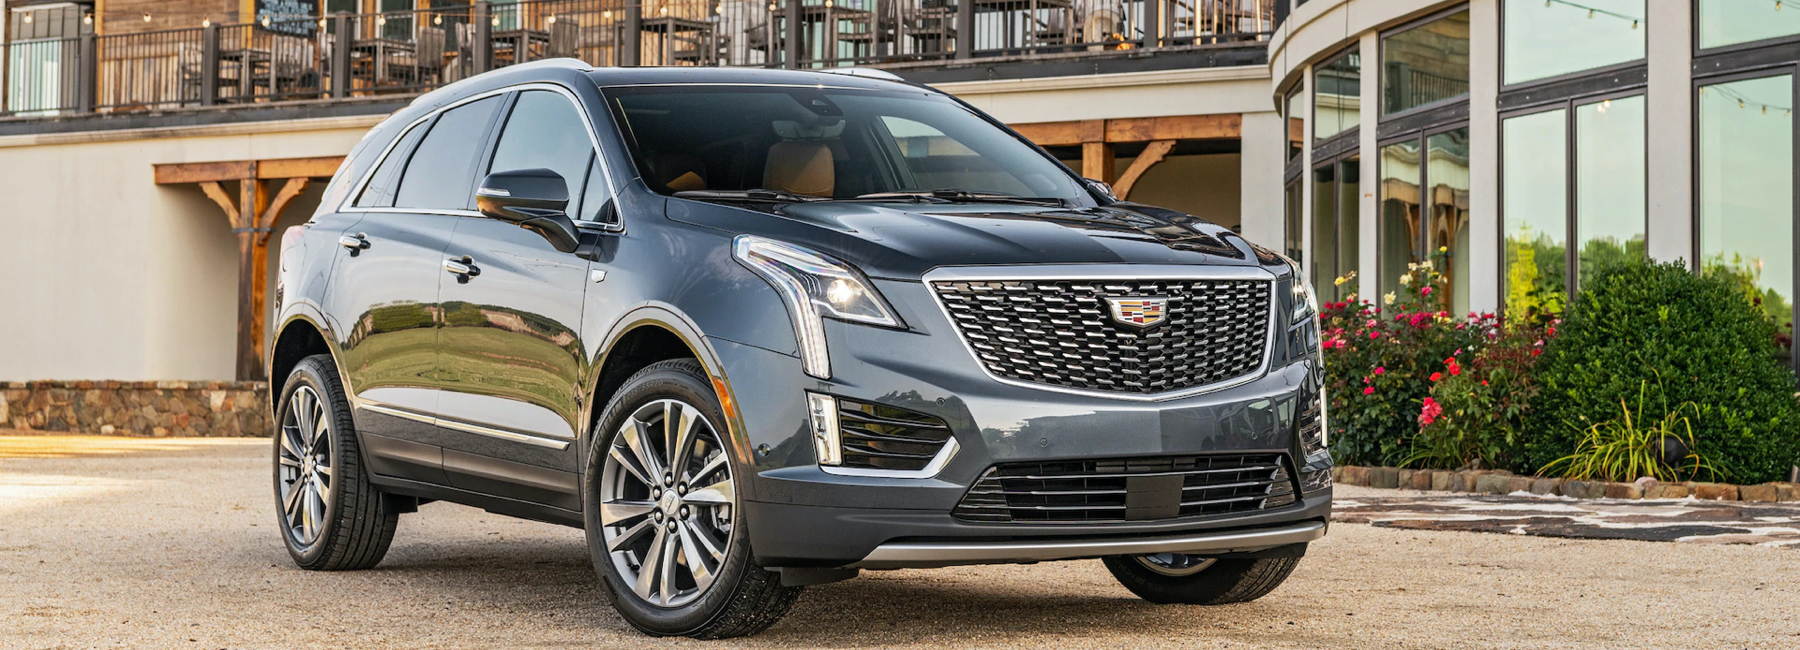 Cadillac XT5 parked on gravel driveway